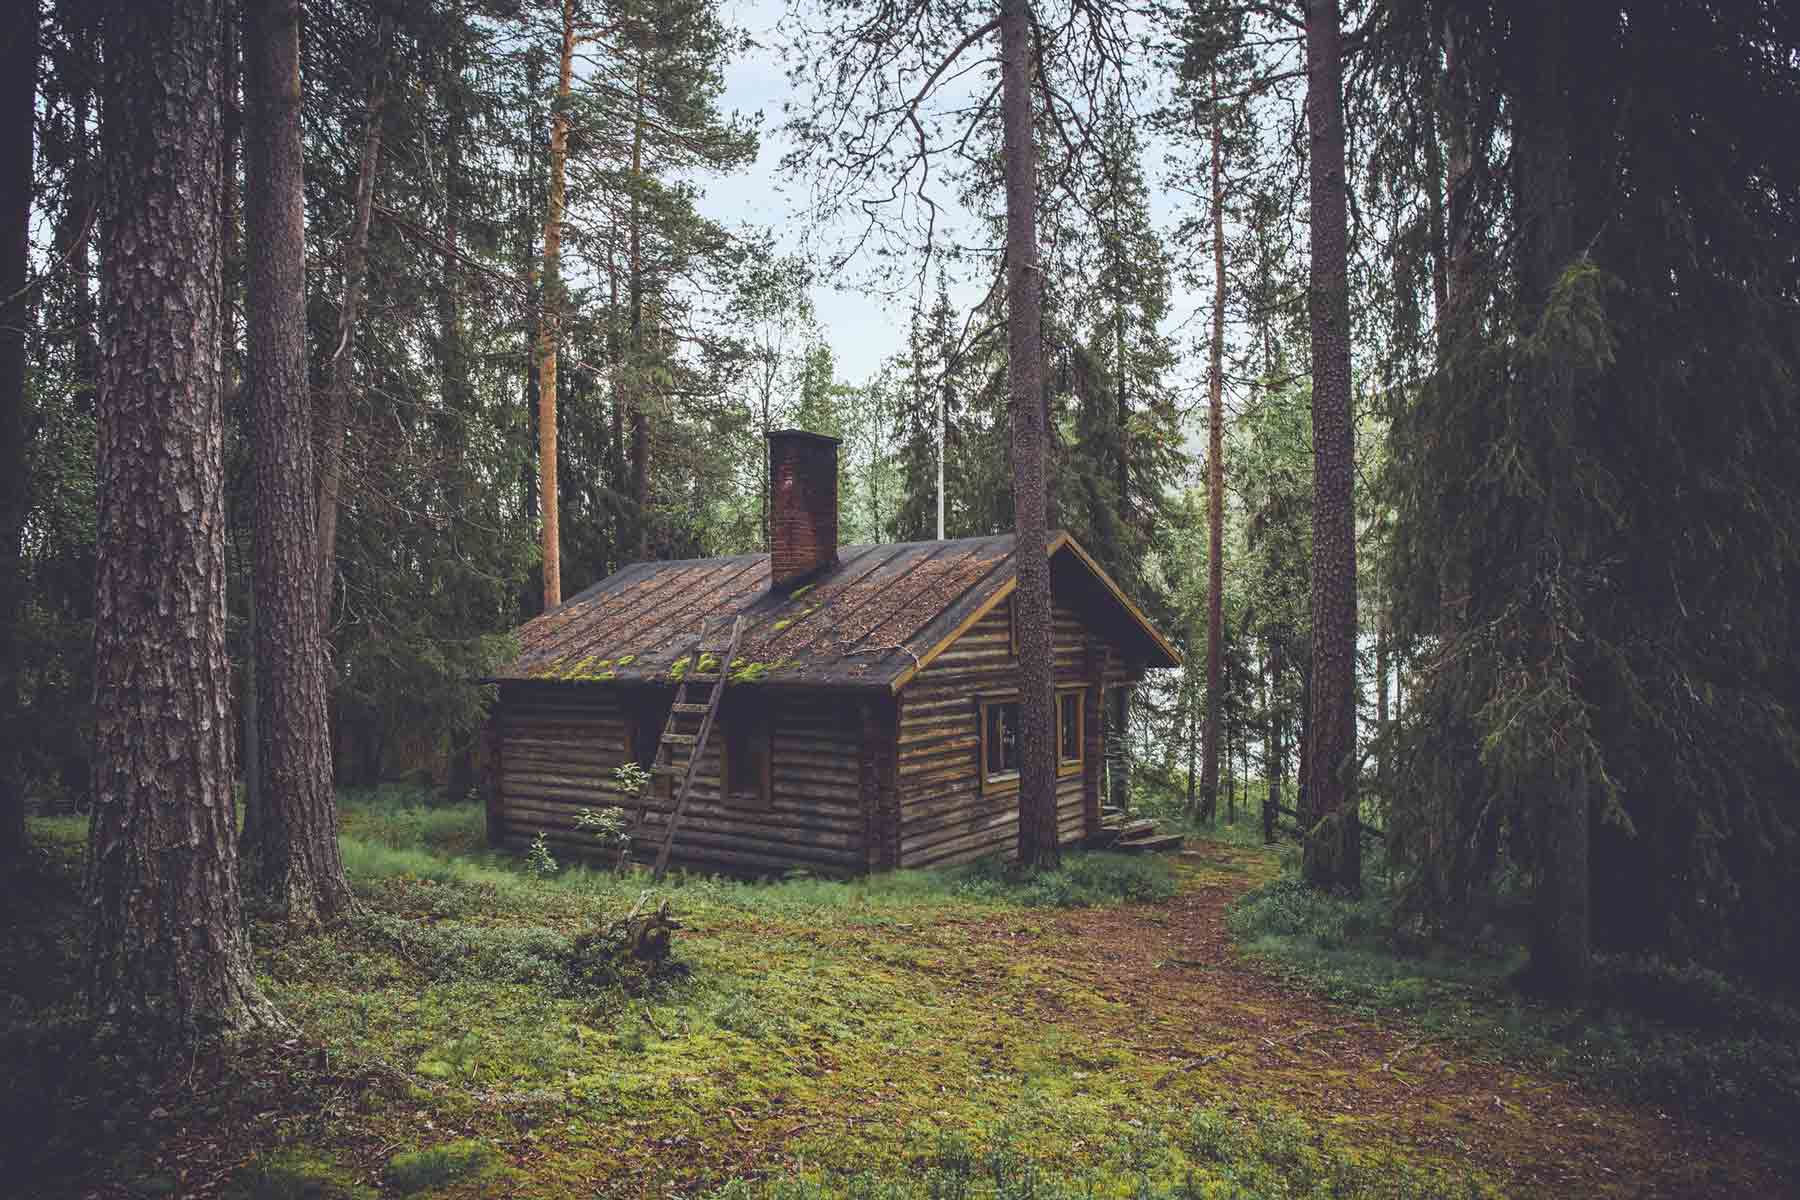 Log cabin in the middle of a pine forest